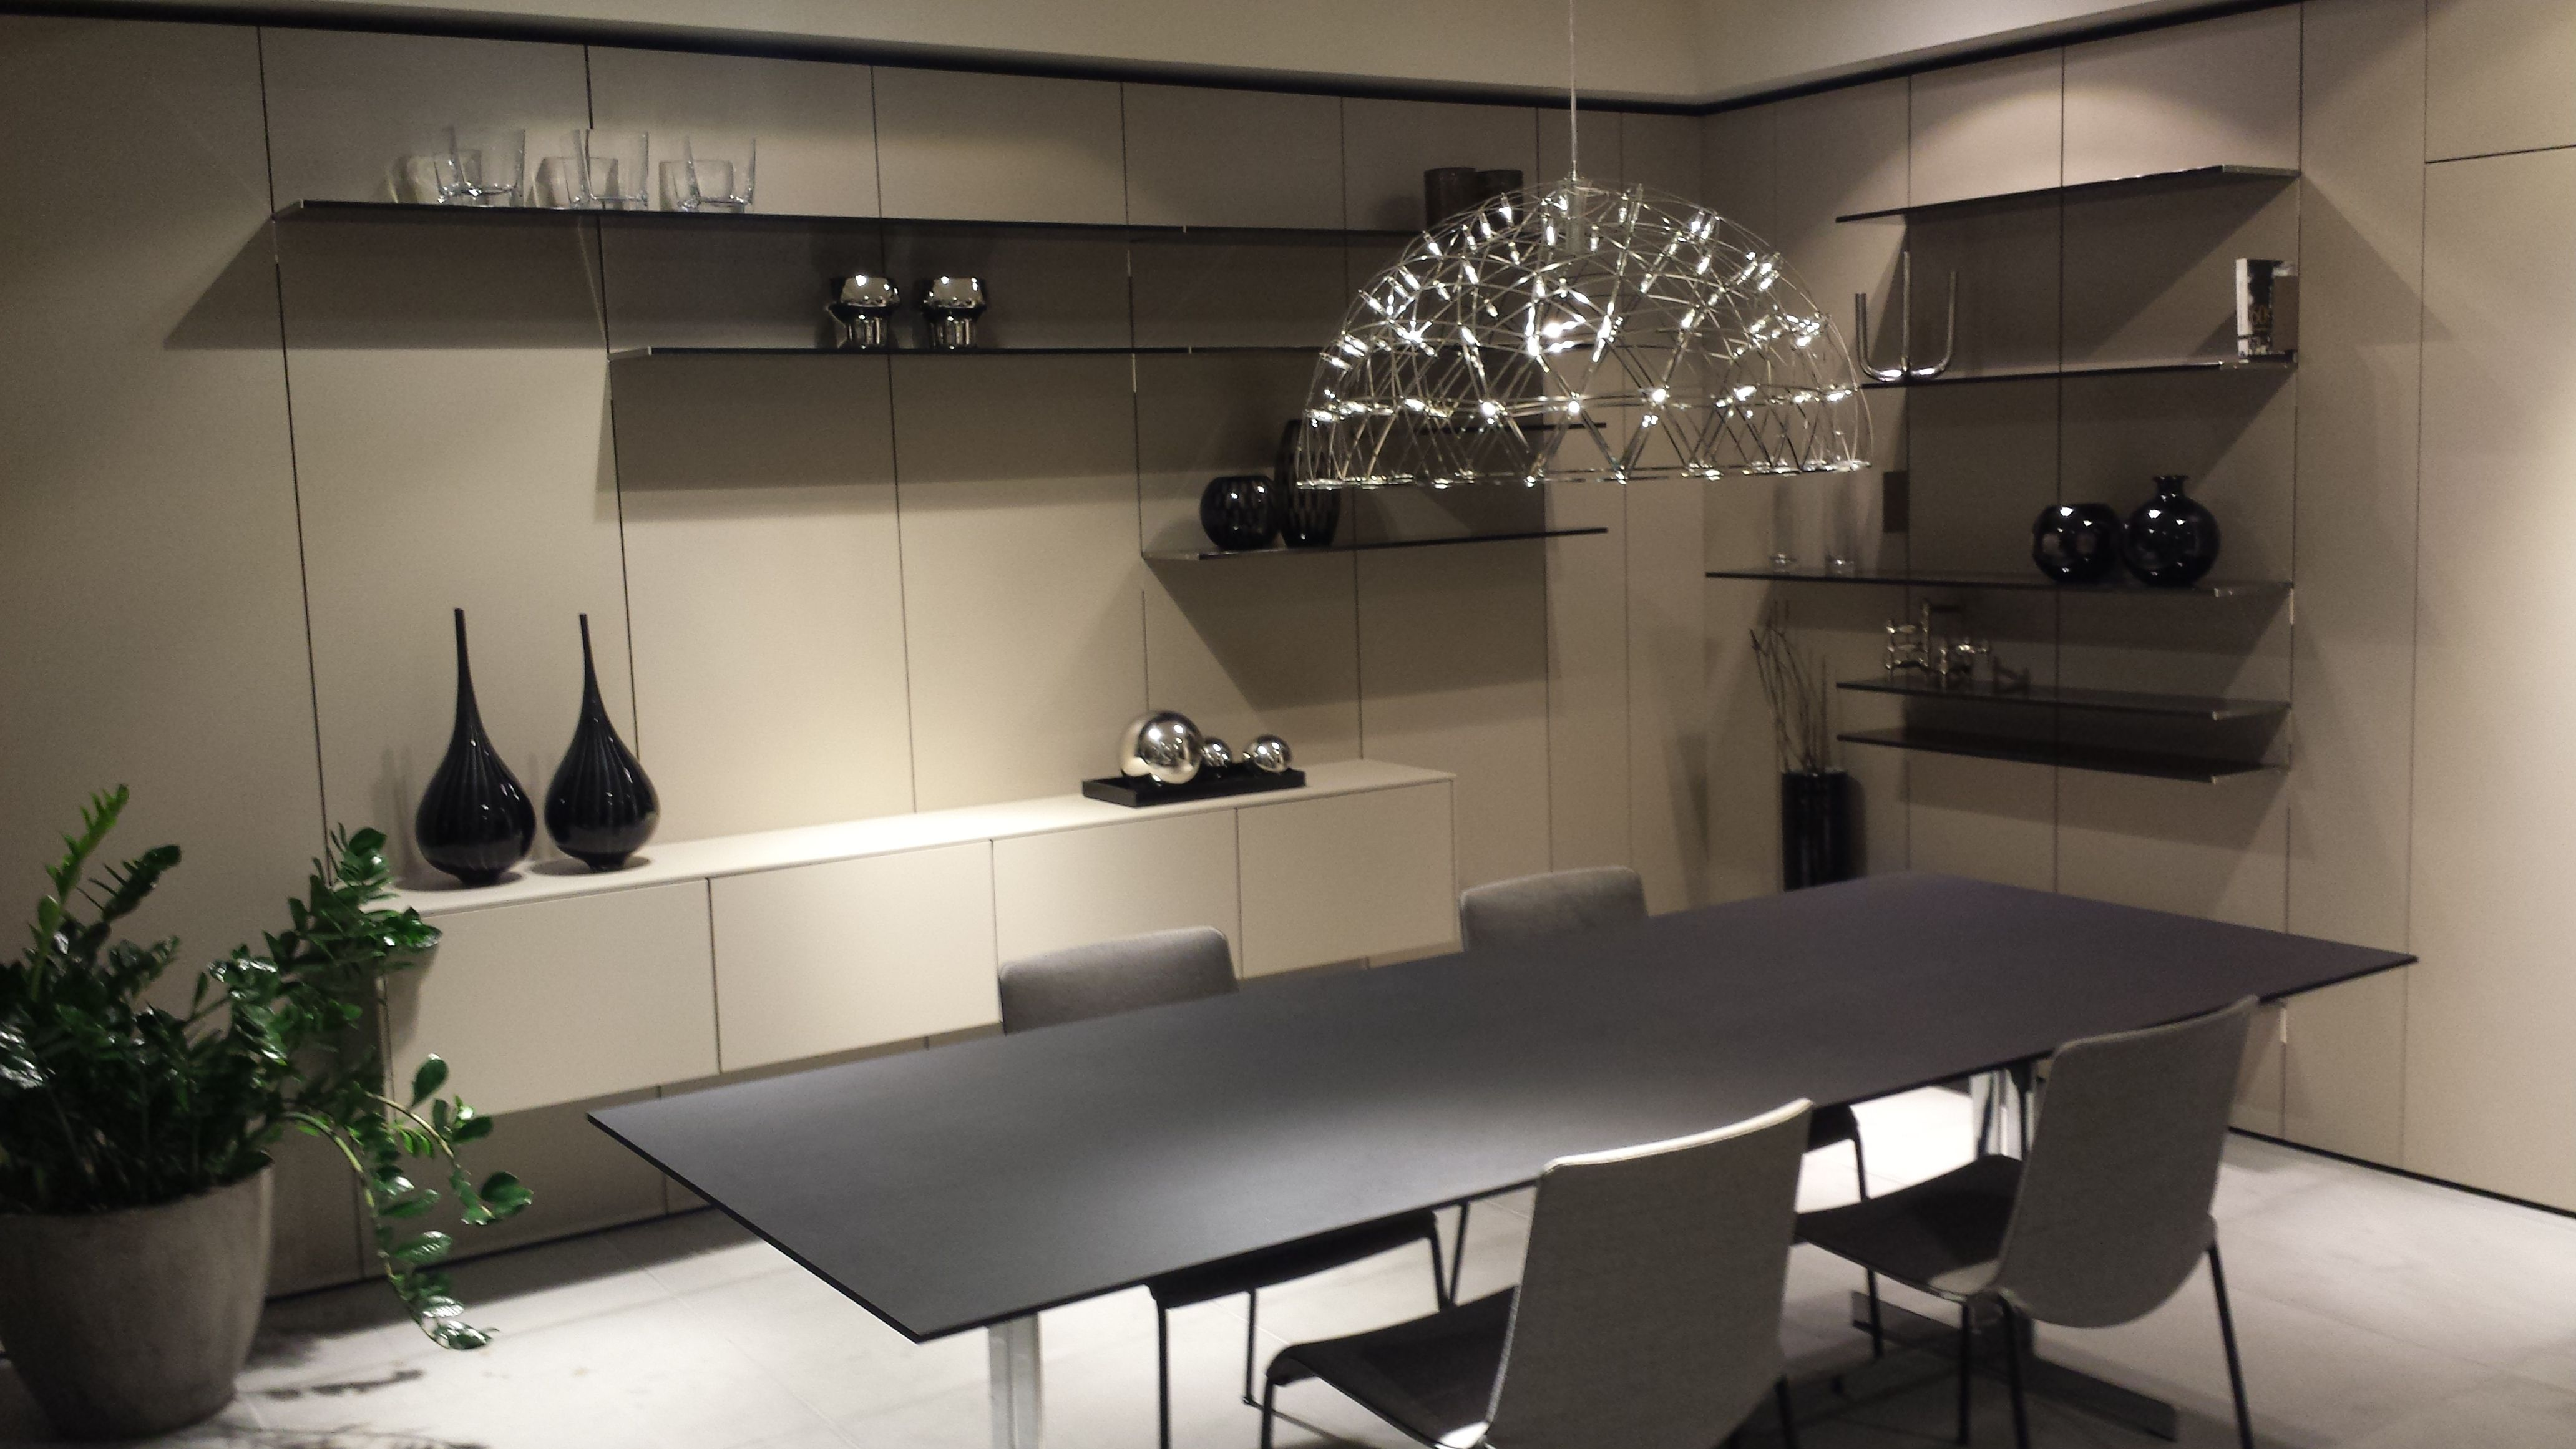 SieMatic Floating Spaces  configuration  SieMatic  Furniture  German   Yorkshire  Huddersfield  SieMatic Floating Spaces  configuration  SieMatic  Furniture  . Dining Room Furniture Stores Yorkshire. Home Design Ideas